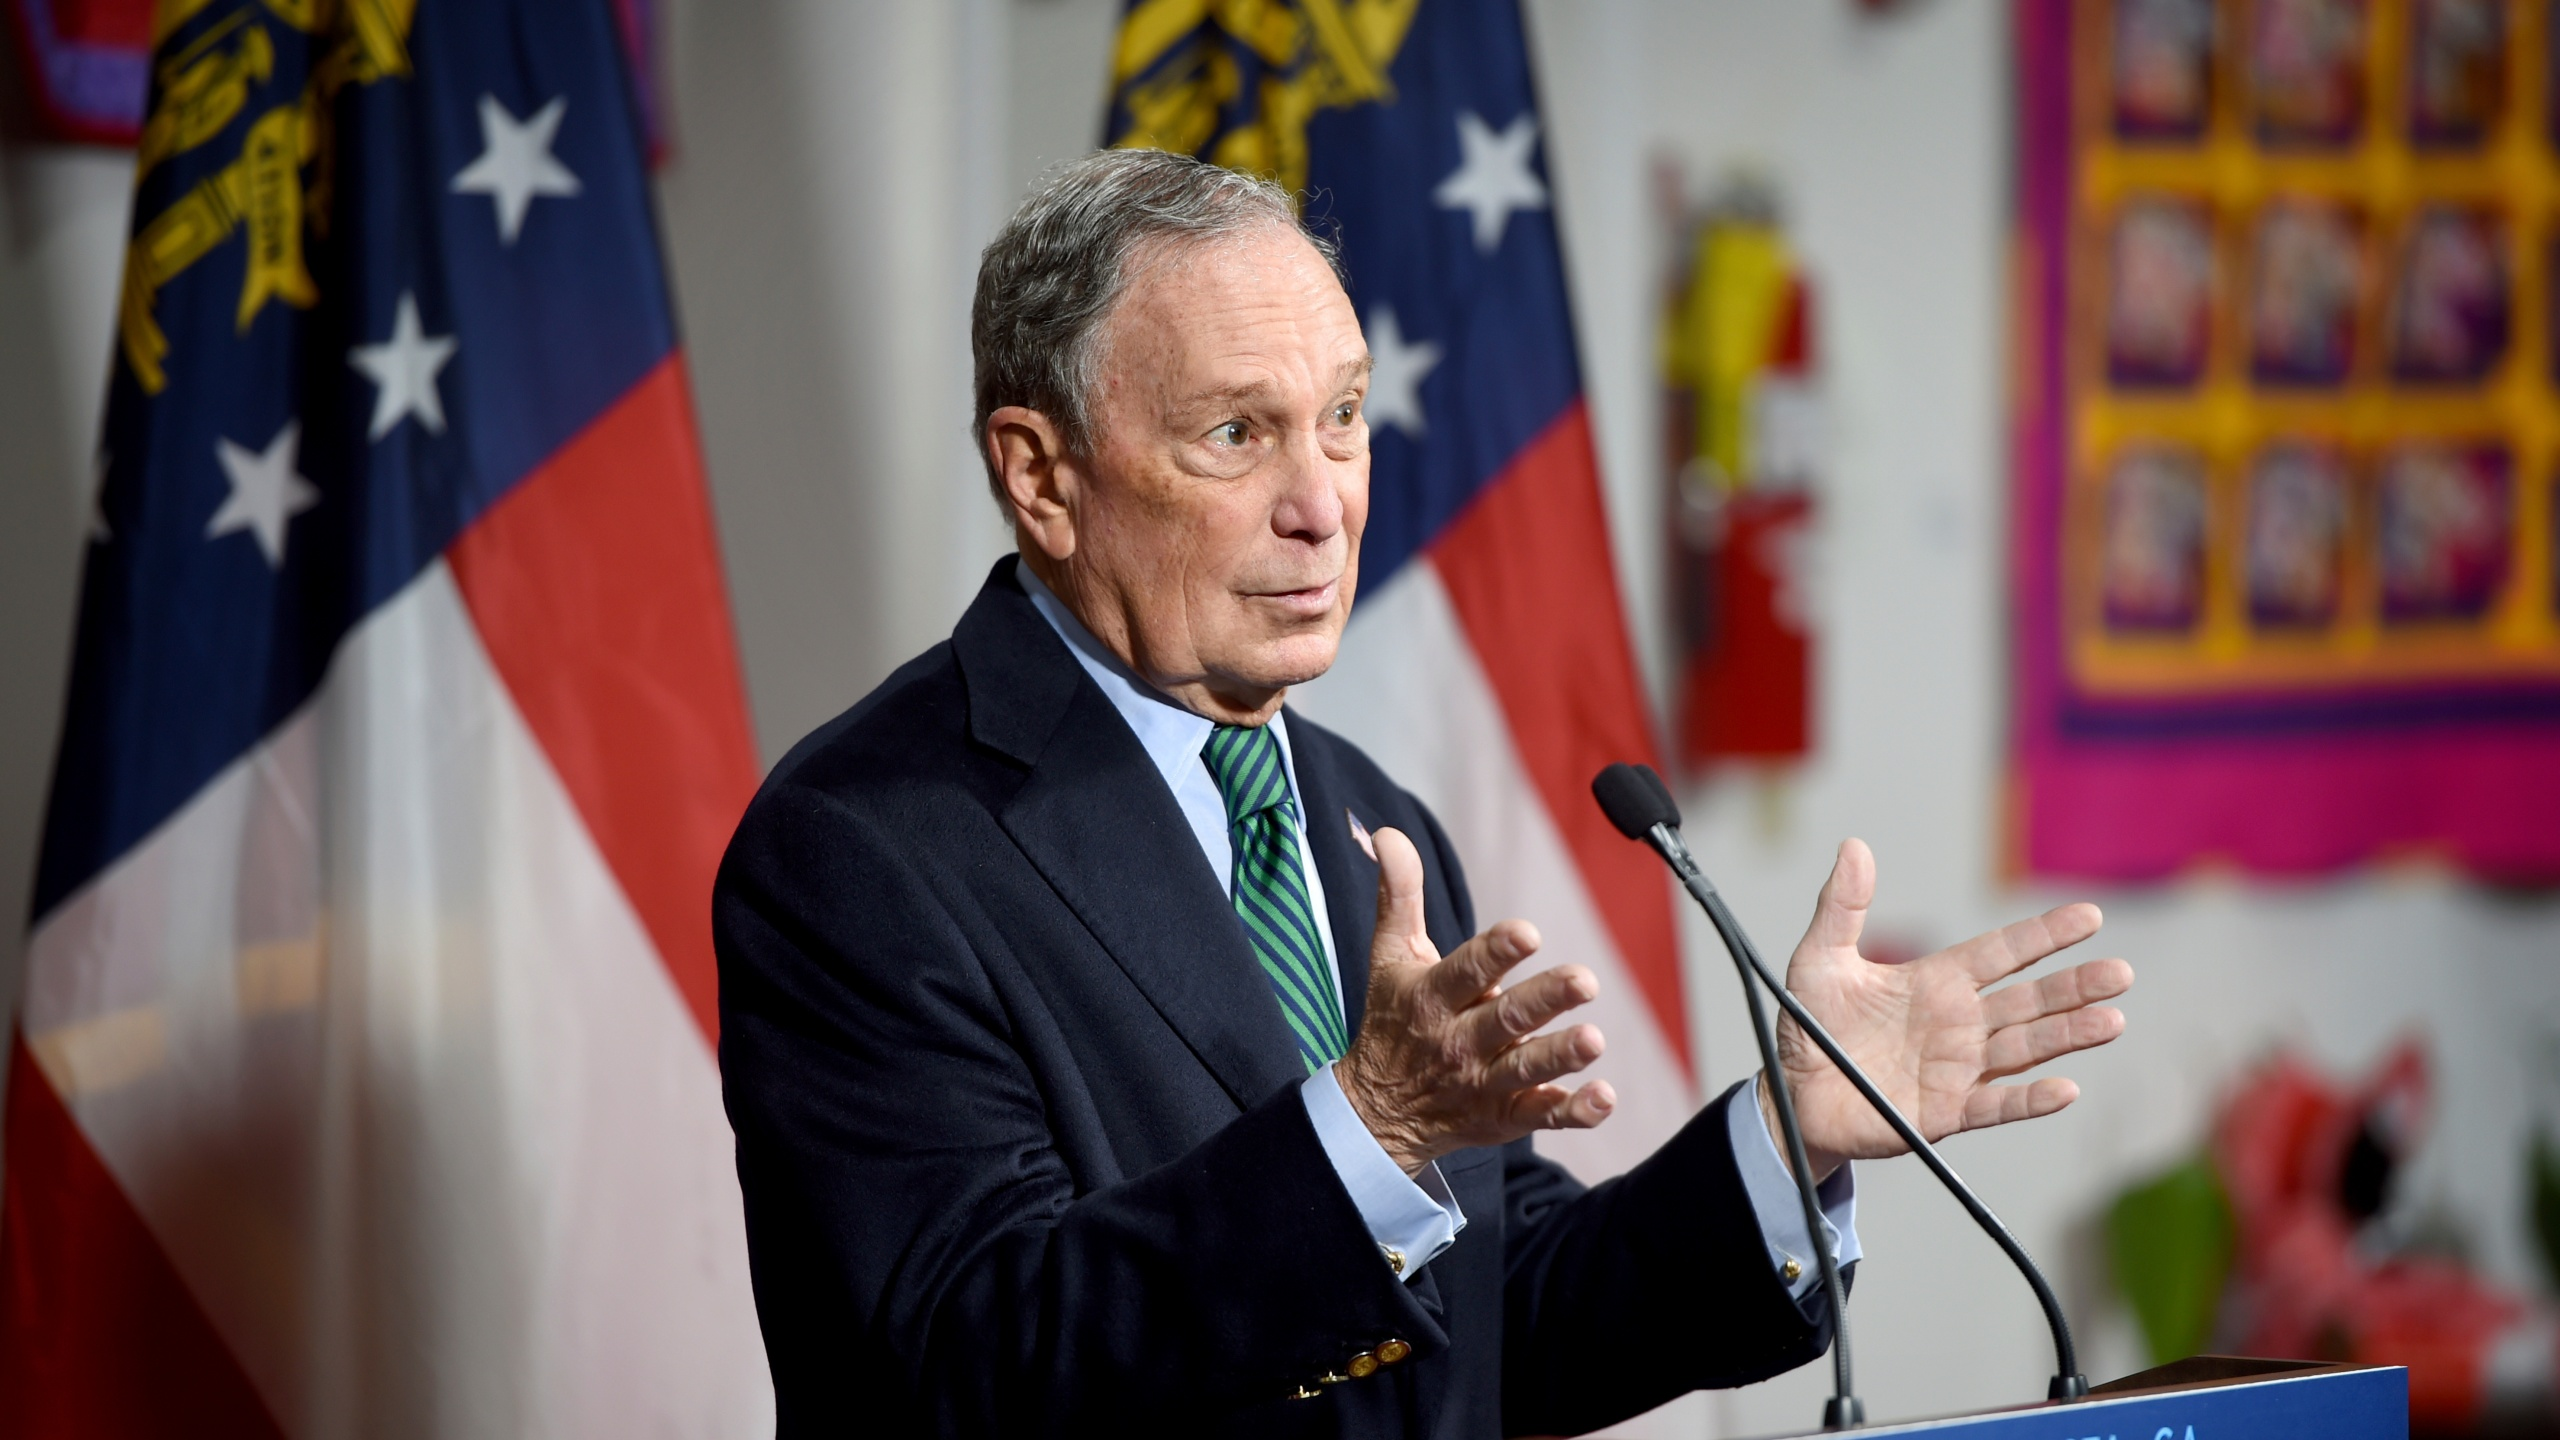 New York Obituaries 2020.2020 Newcomer Bloomberg Stepping Onto International Stage